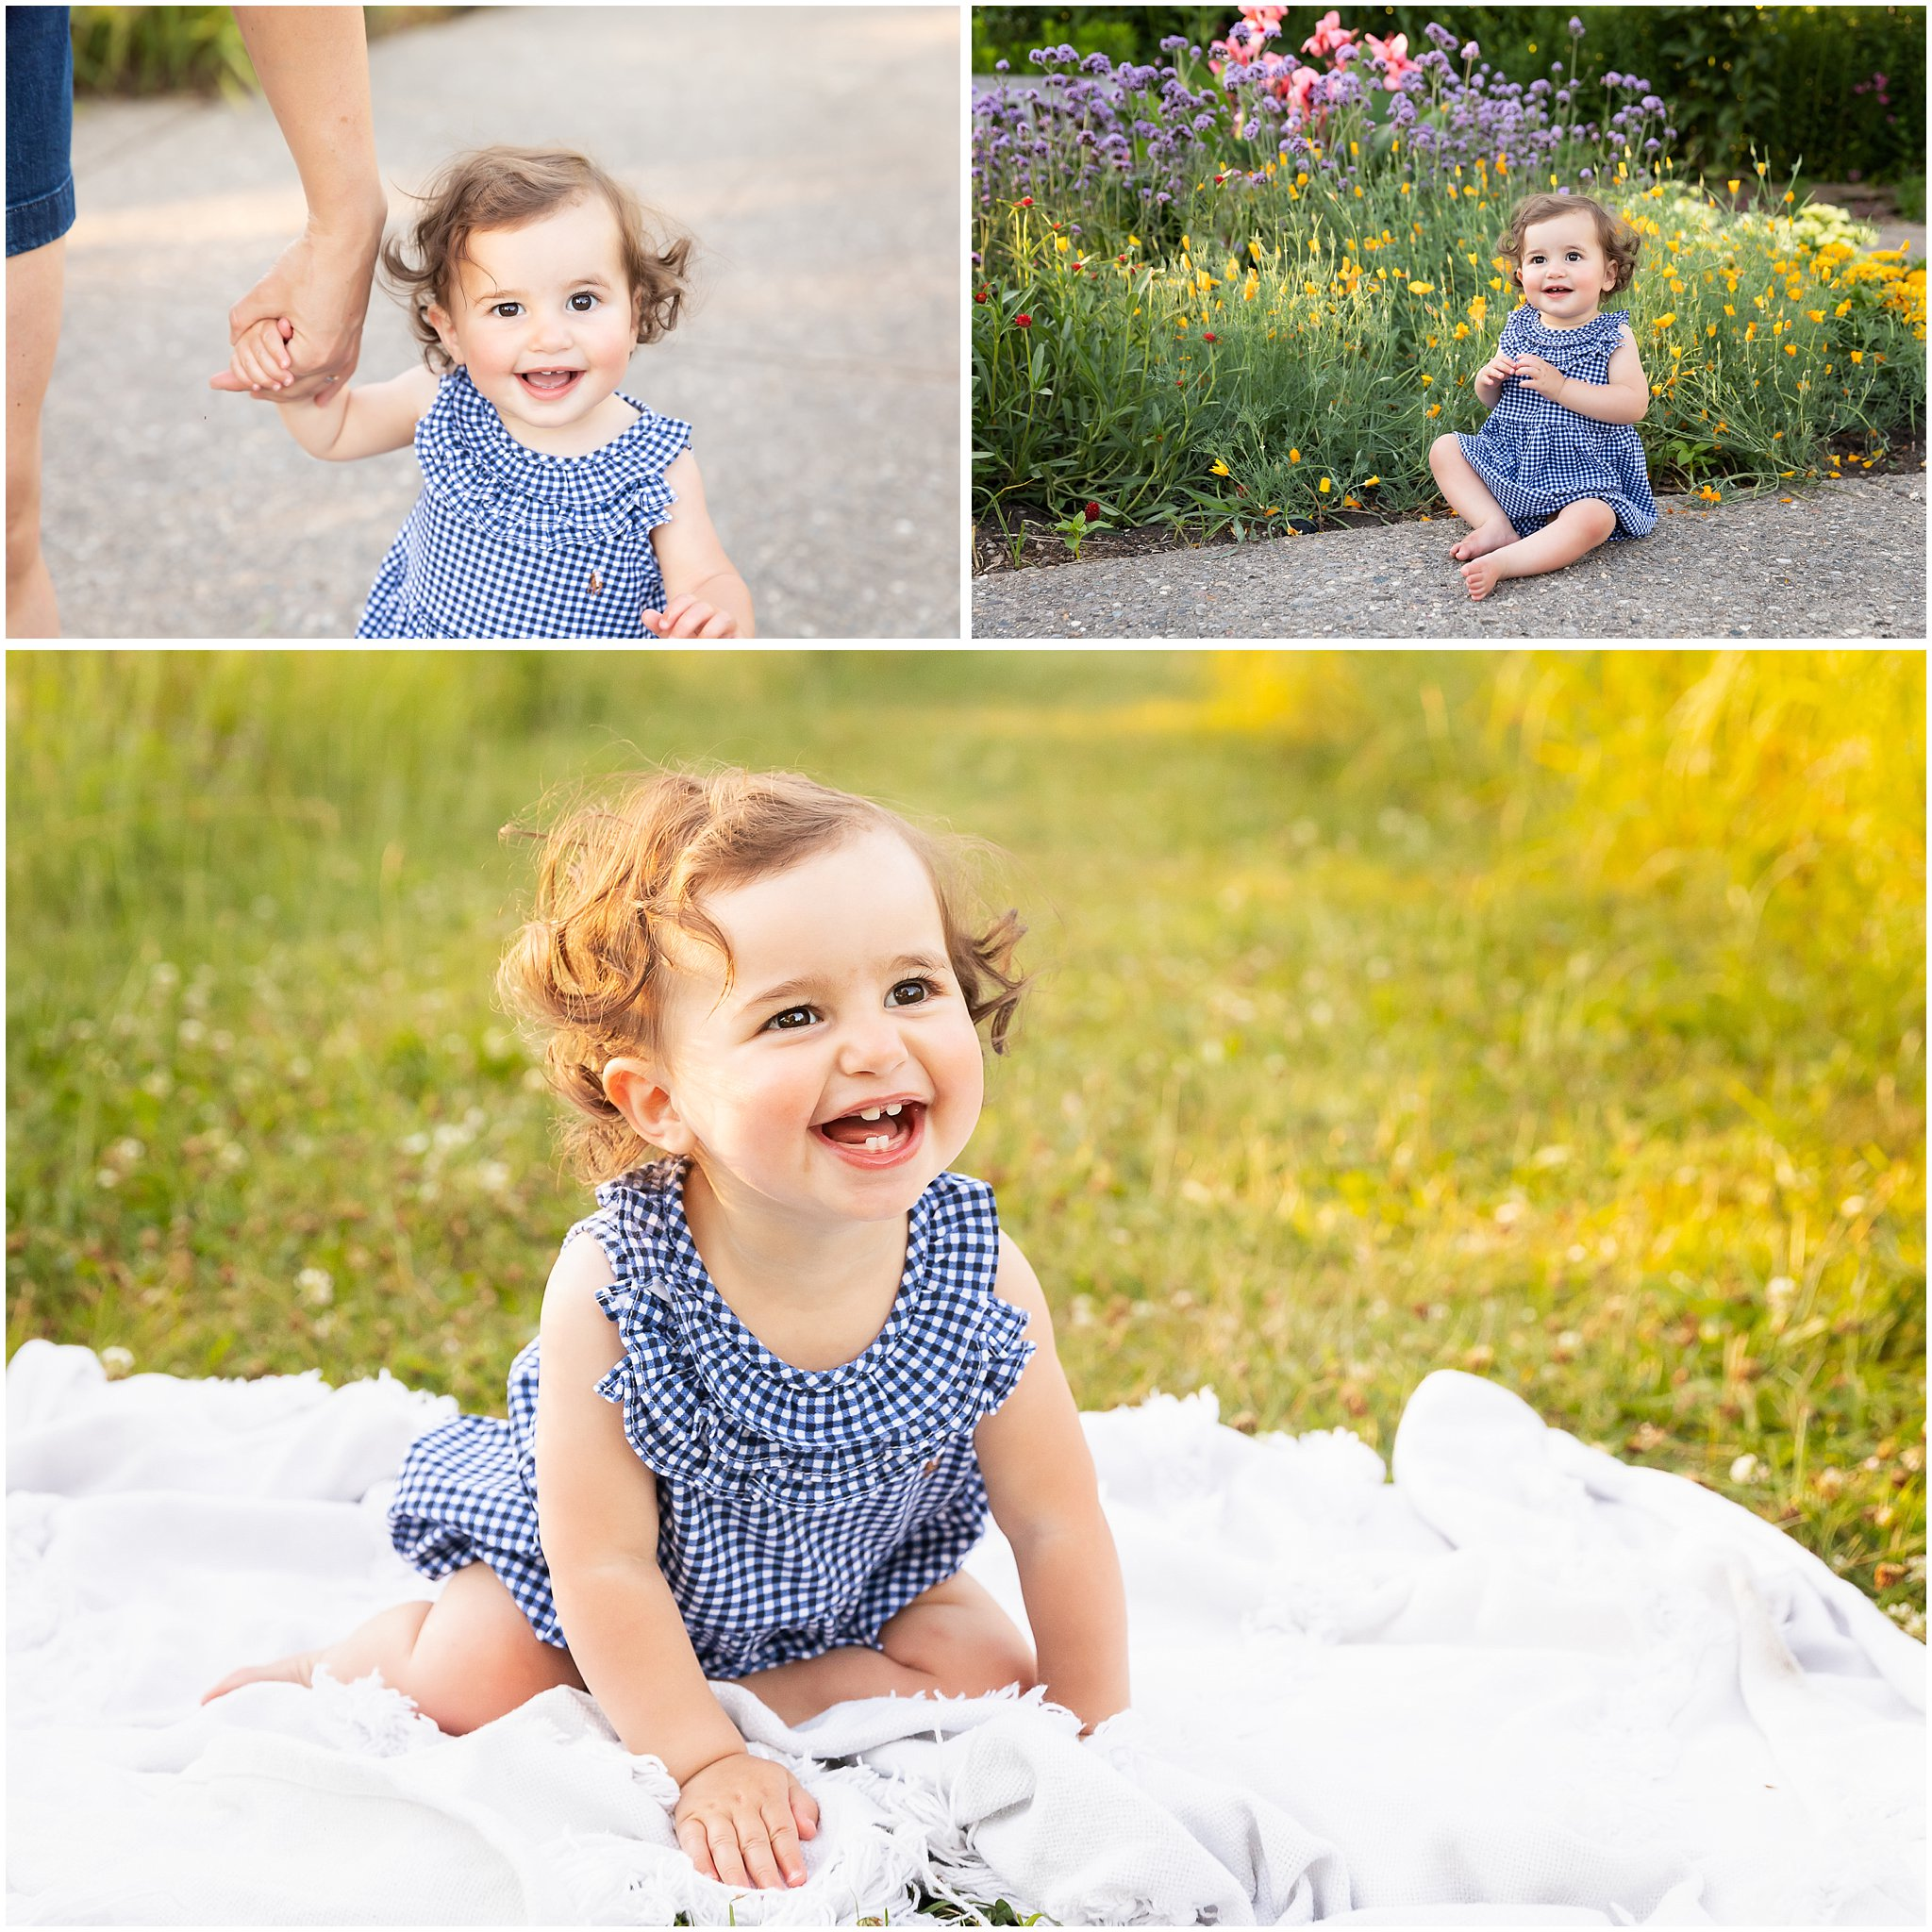 Ann Arbor Family Photographer | Summer Photos at Matthaei